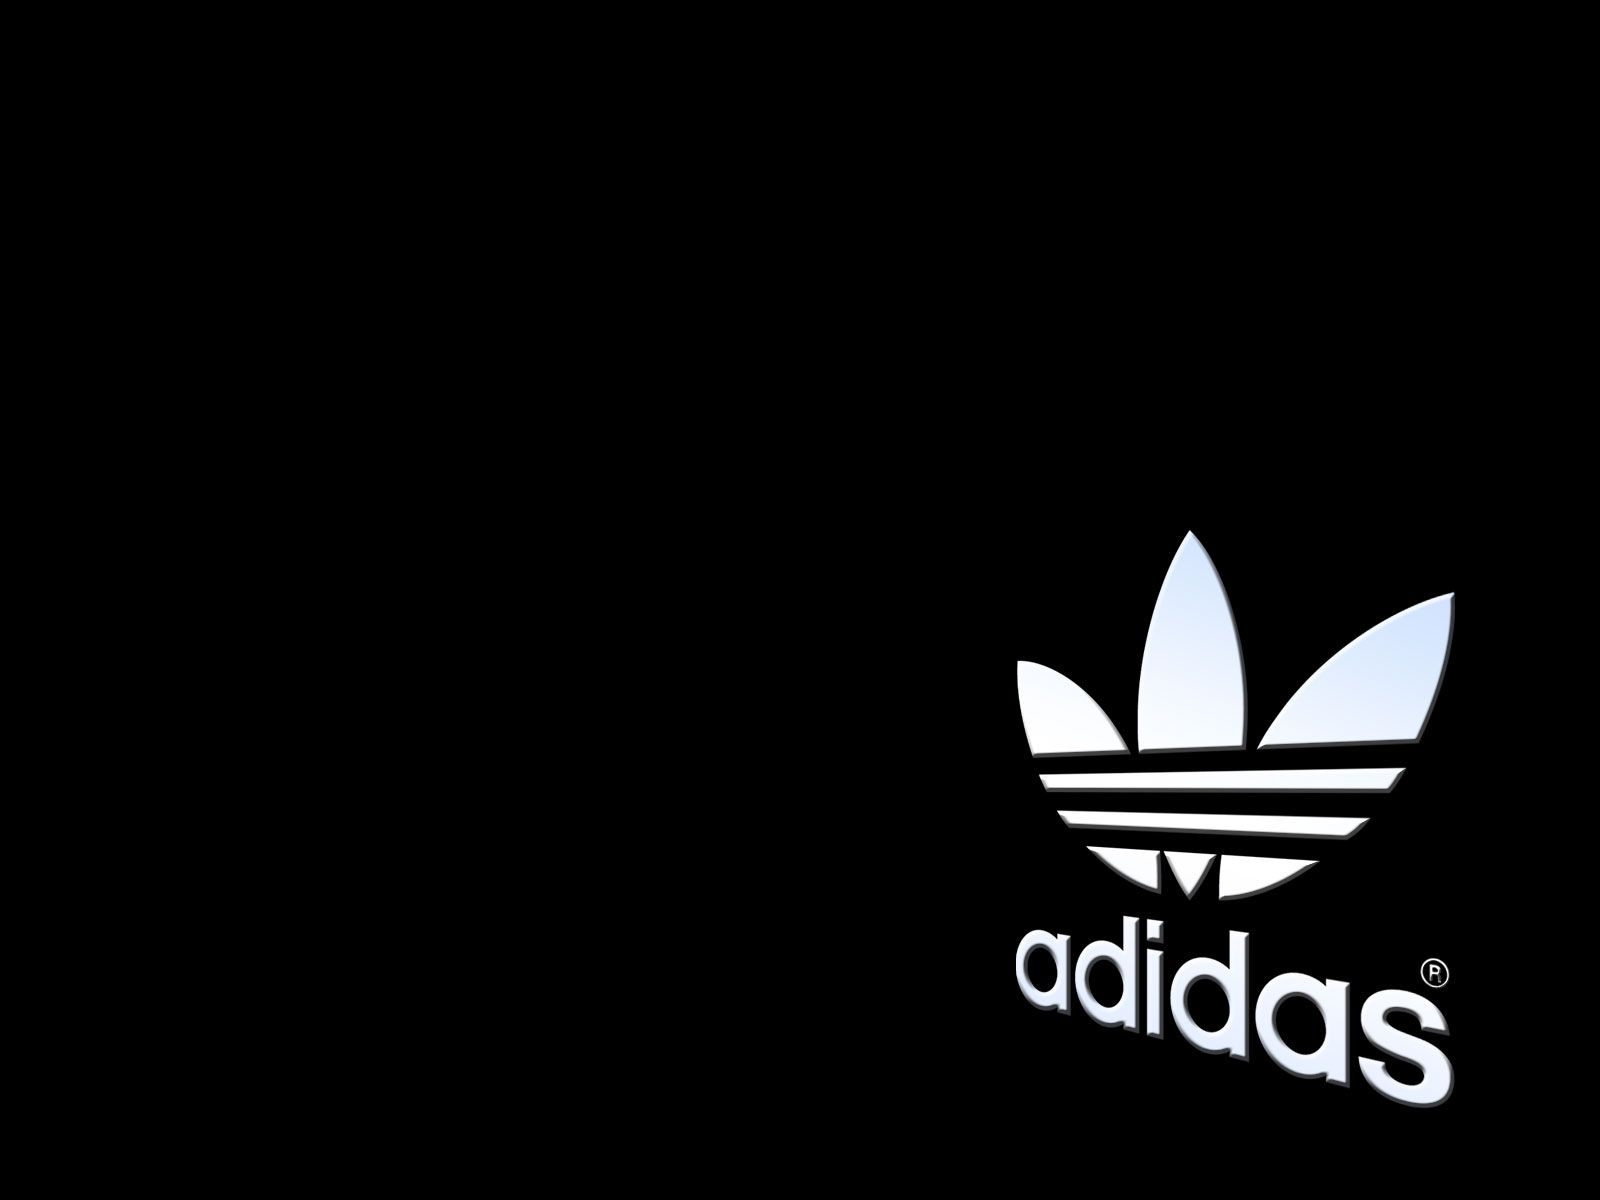 1600x1200 Adidas Black Wallpapers